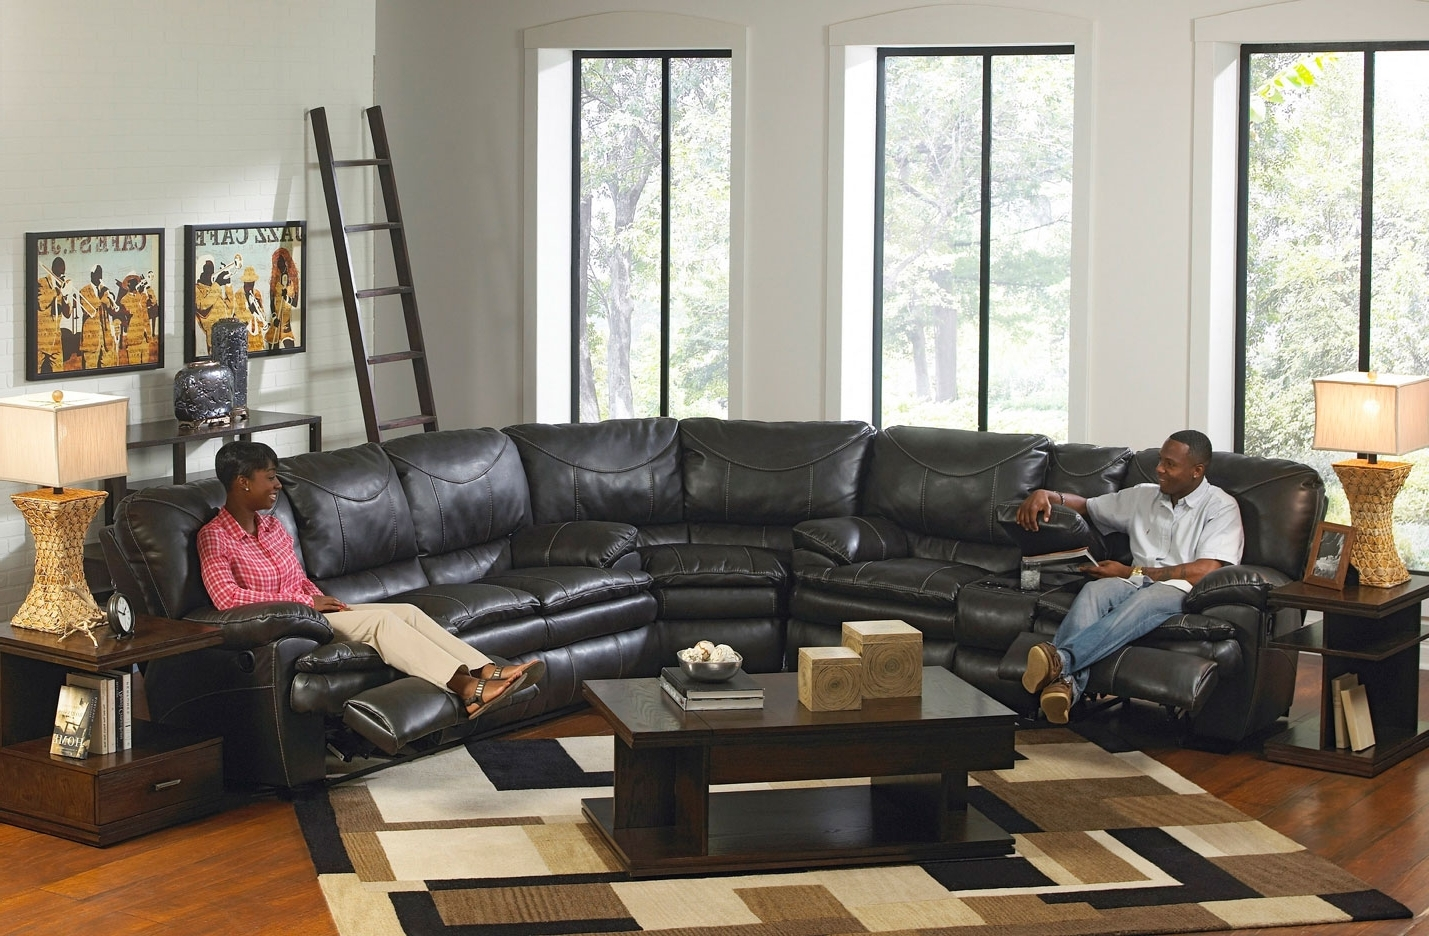 Well Liked Berkline Sofas In Sectional Sofa: Stylish Design Of Berkline Sectional Sofa (View 19 of 20)